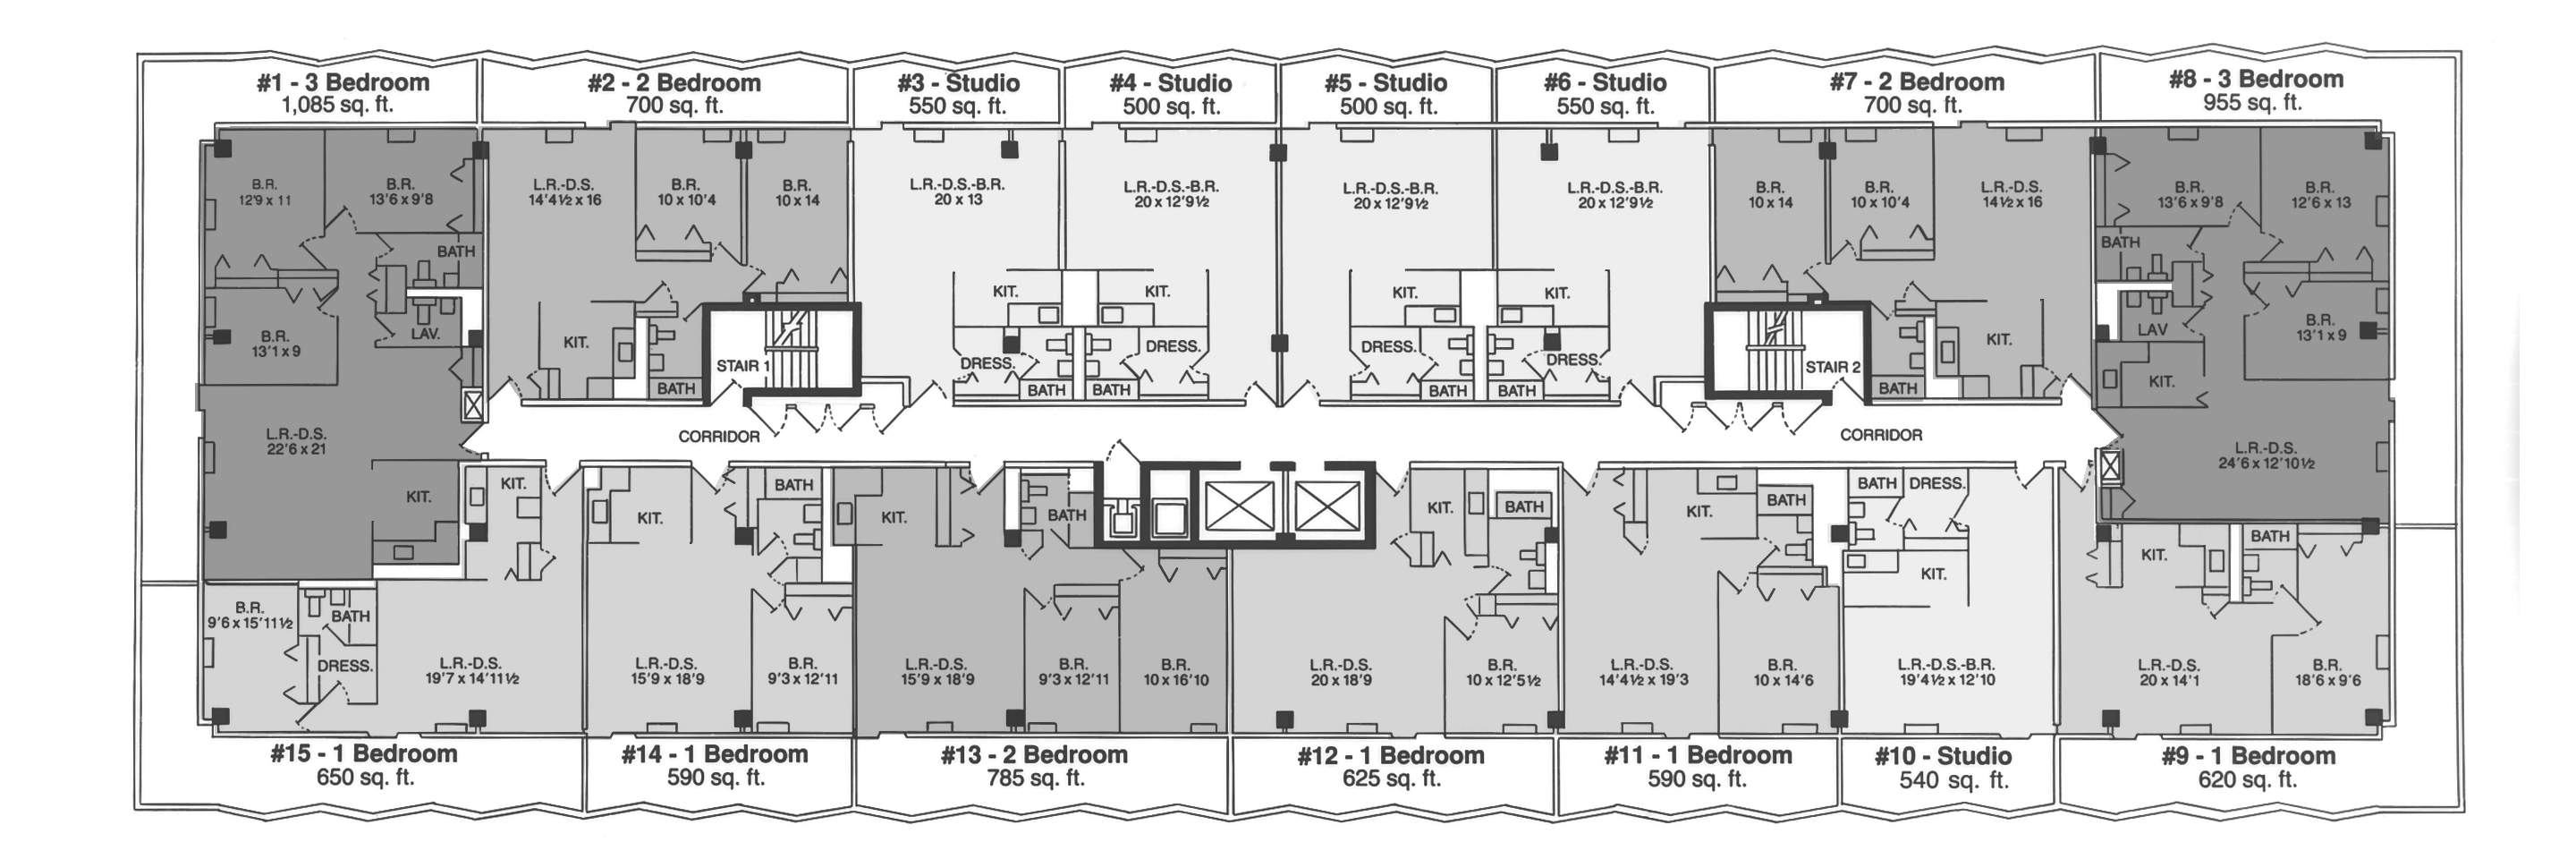 Apartments at huron towers - Planning the studio apartment floor plans ...